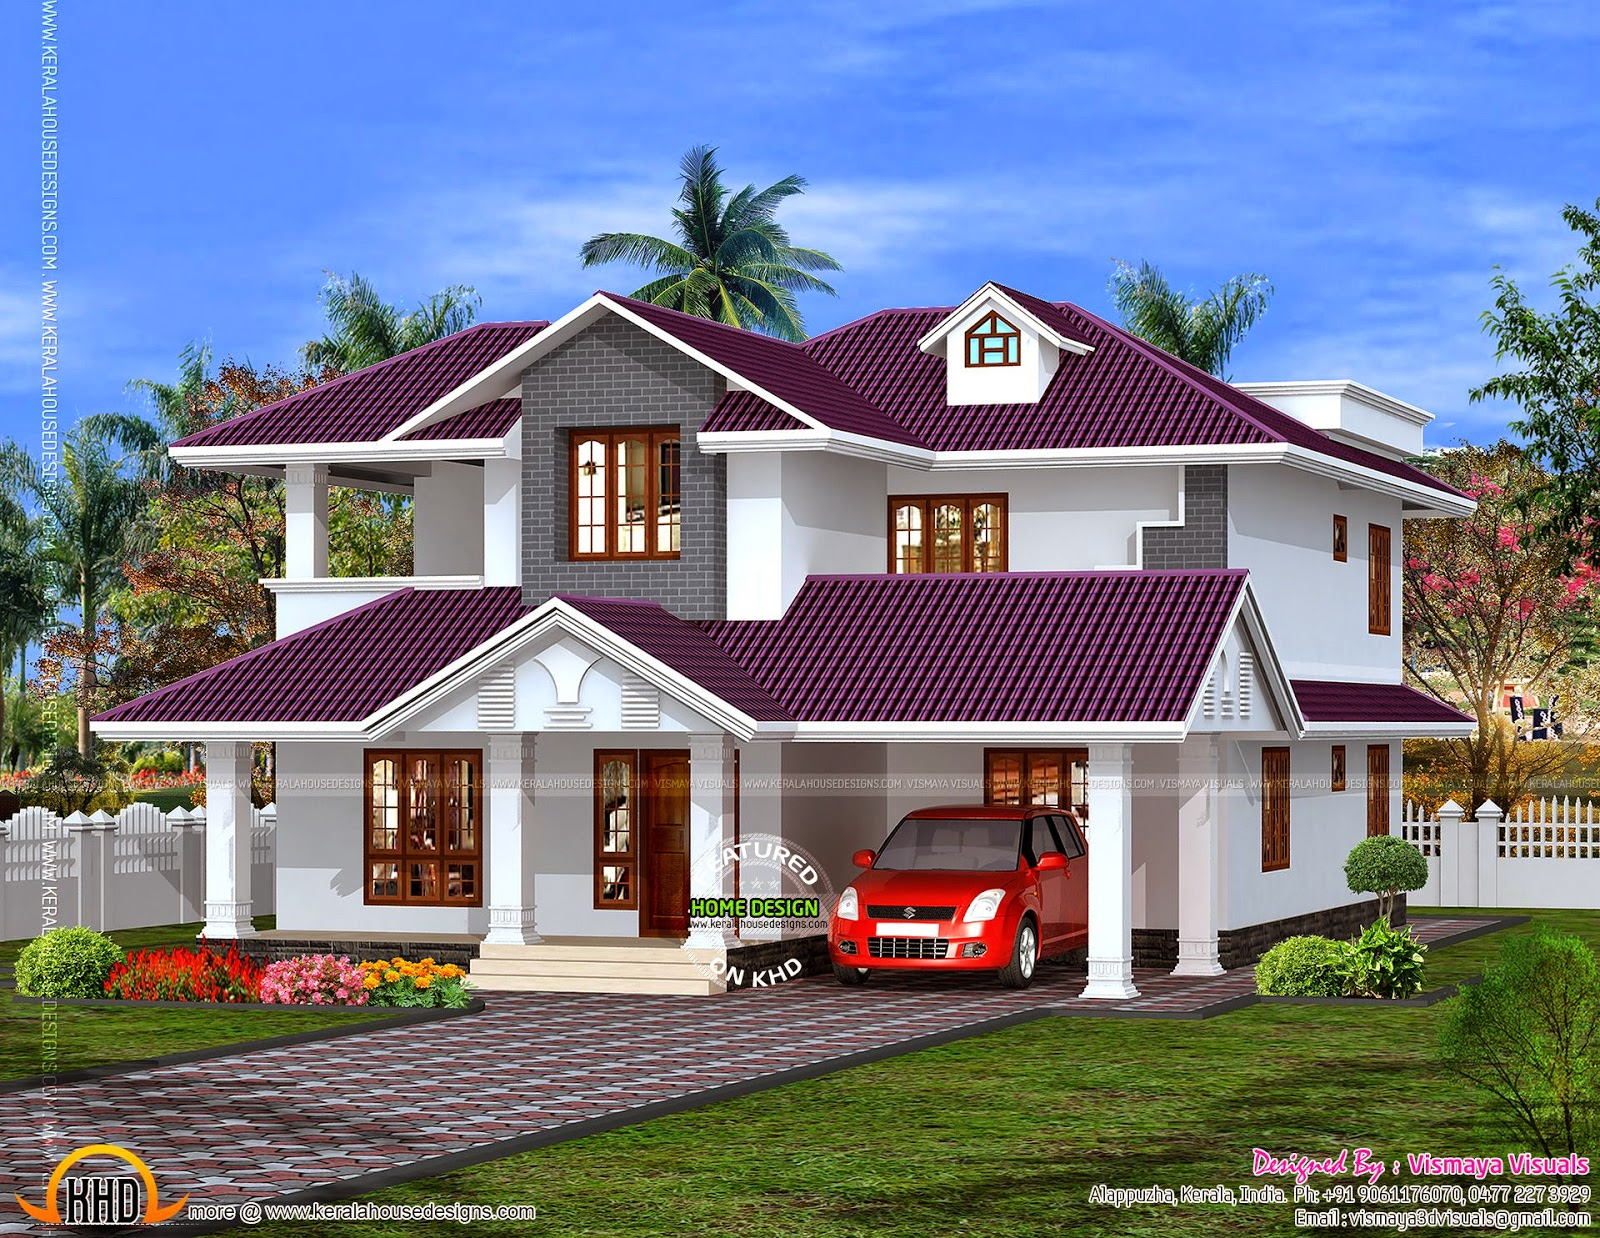 House Design In Purple Roof